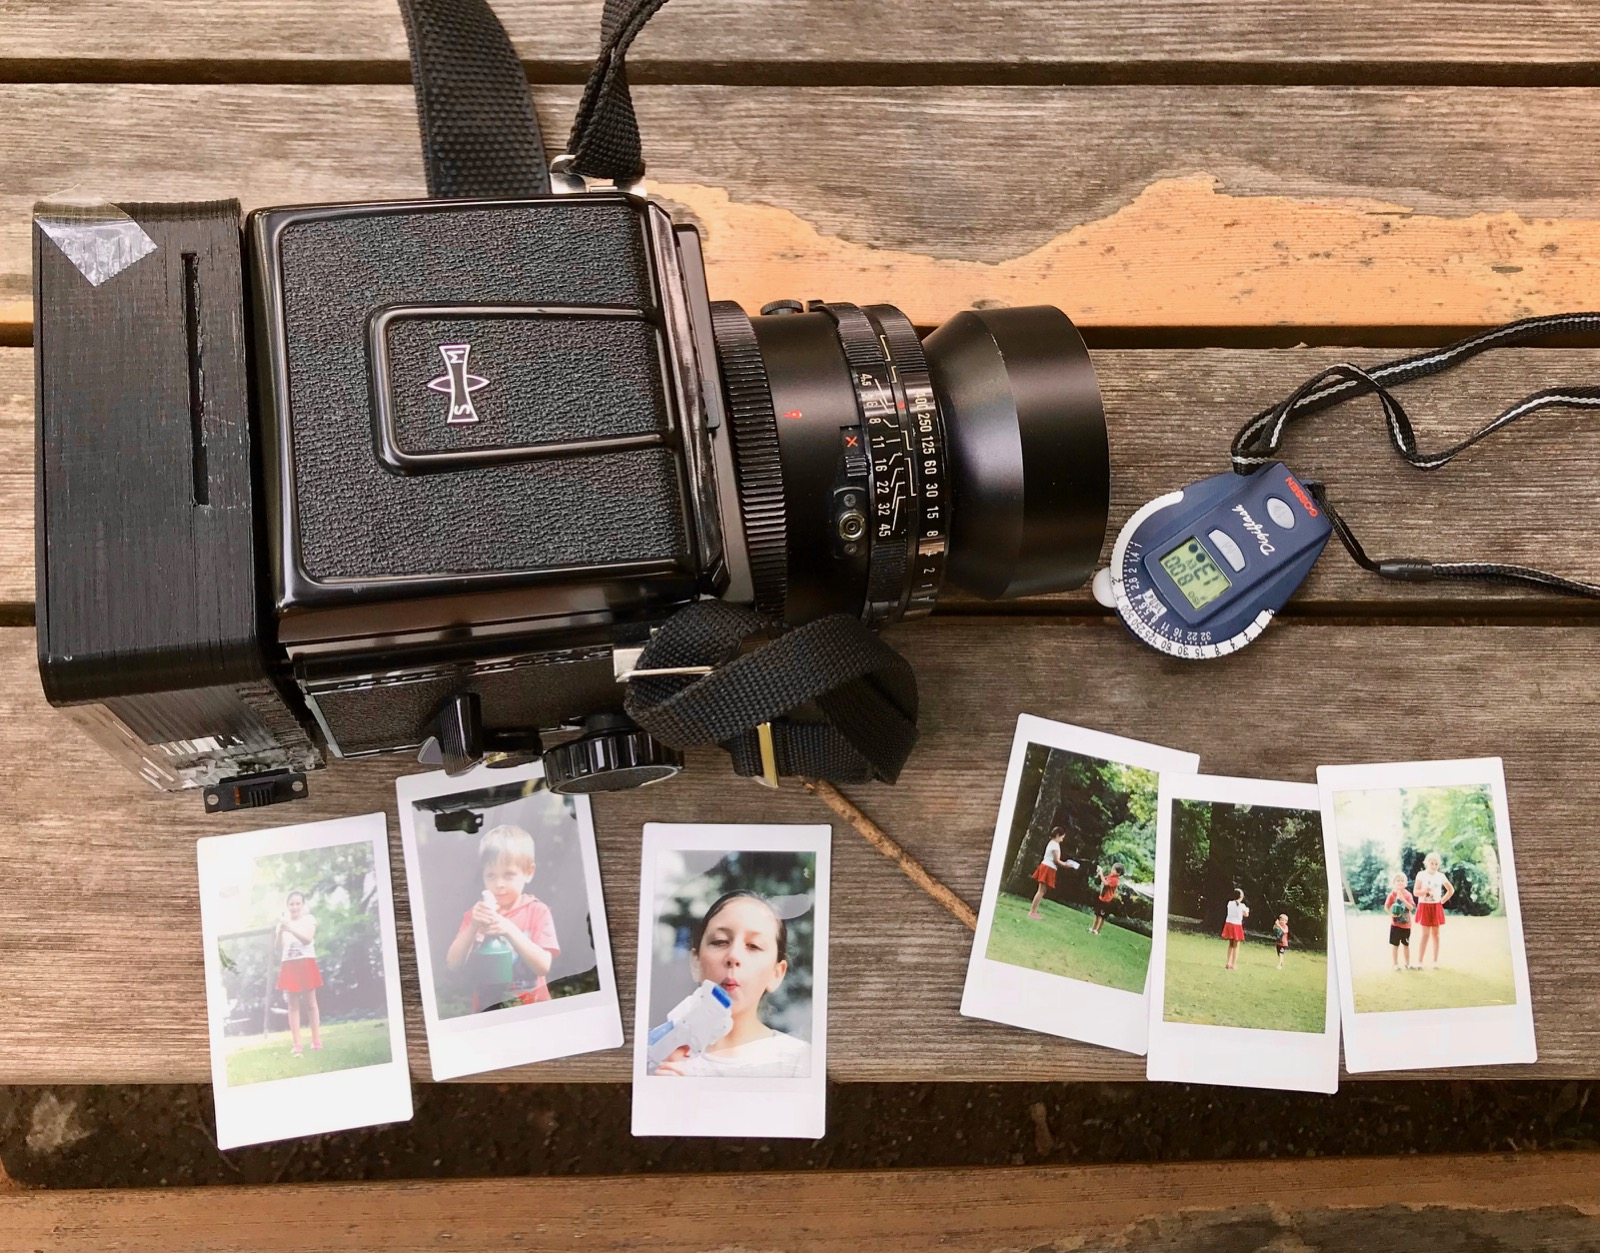 Maminstax in the wild